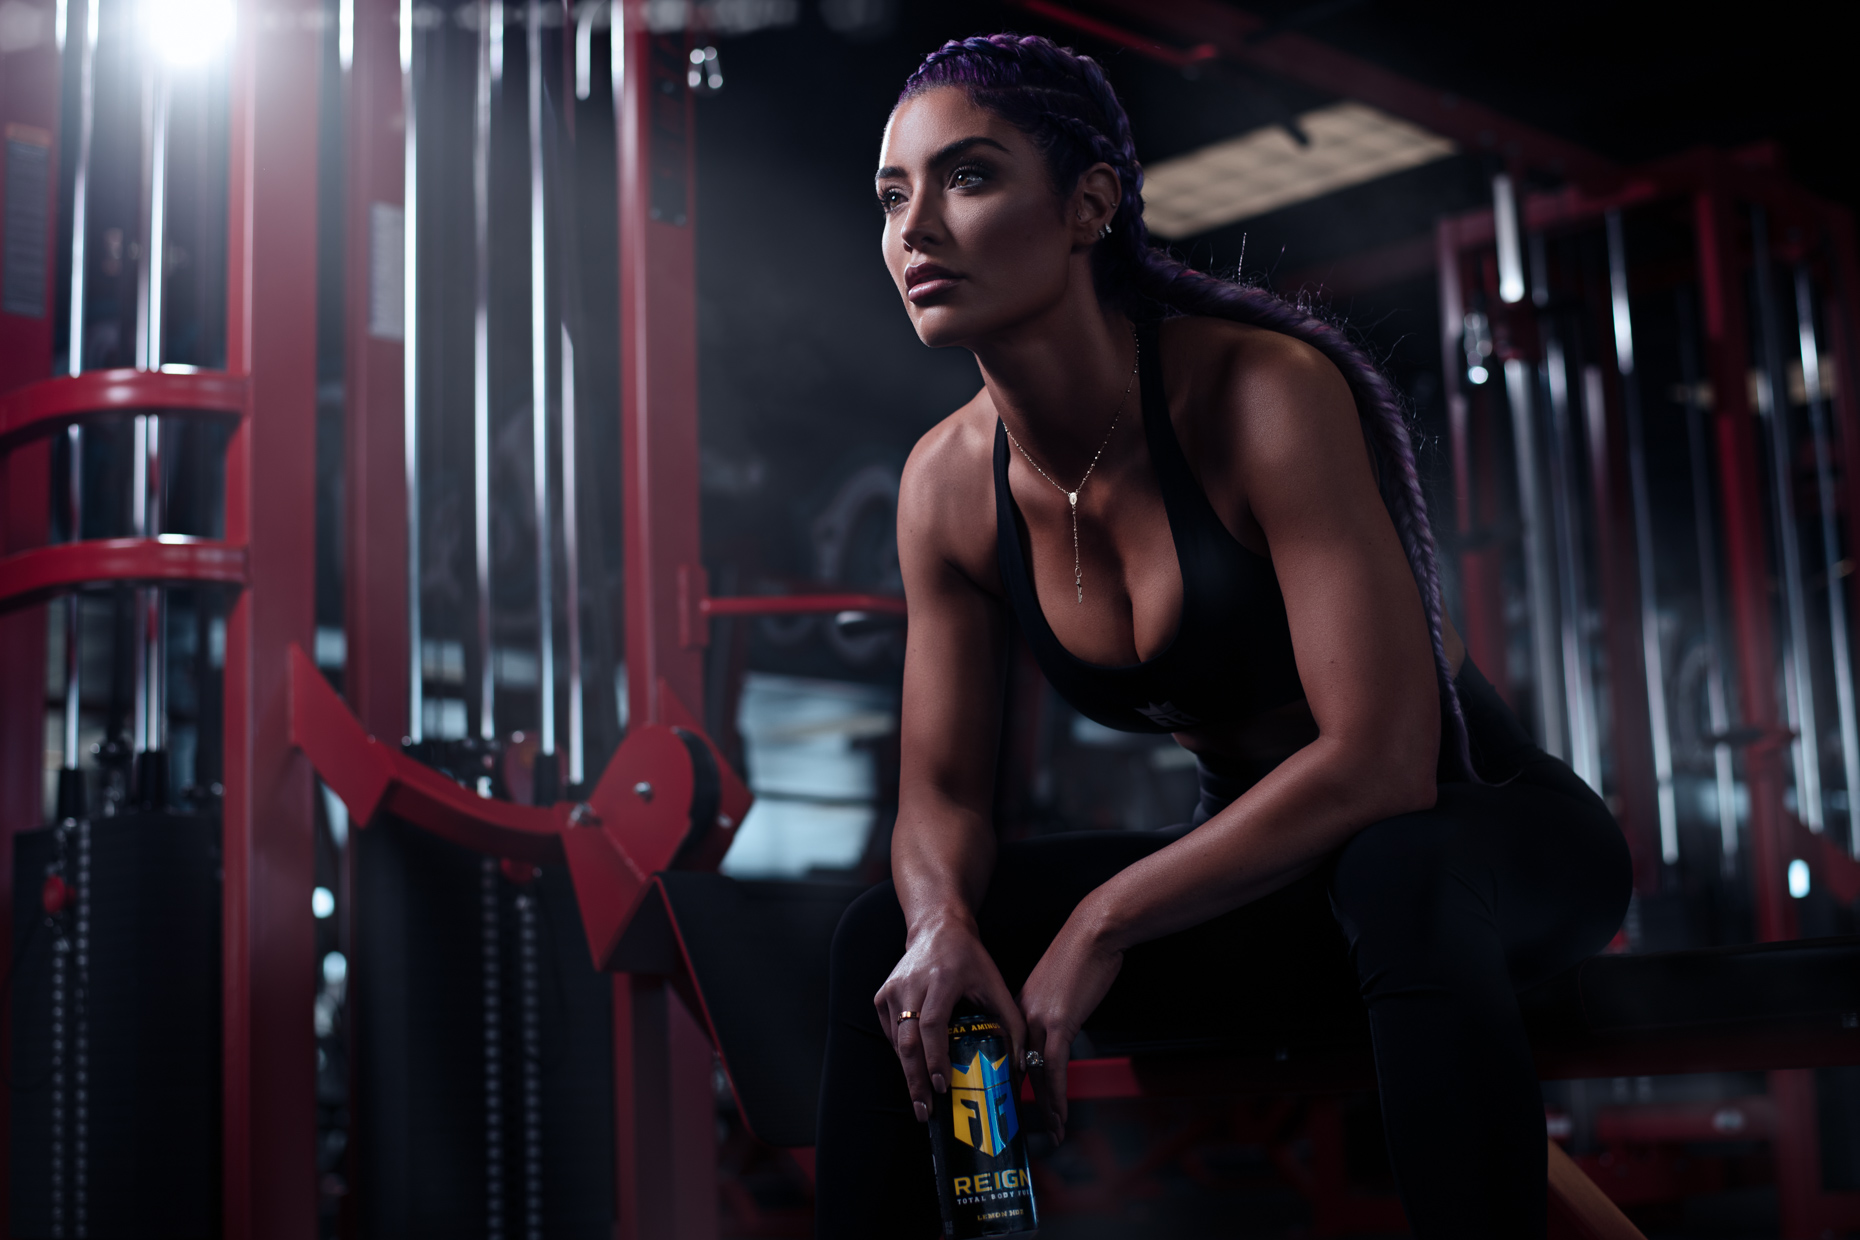 Reign Total Body Fuel - Energy Drink - Natalie Eva Marie - WWE - Thor Bjornson - World